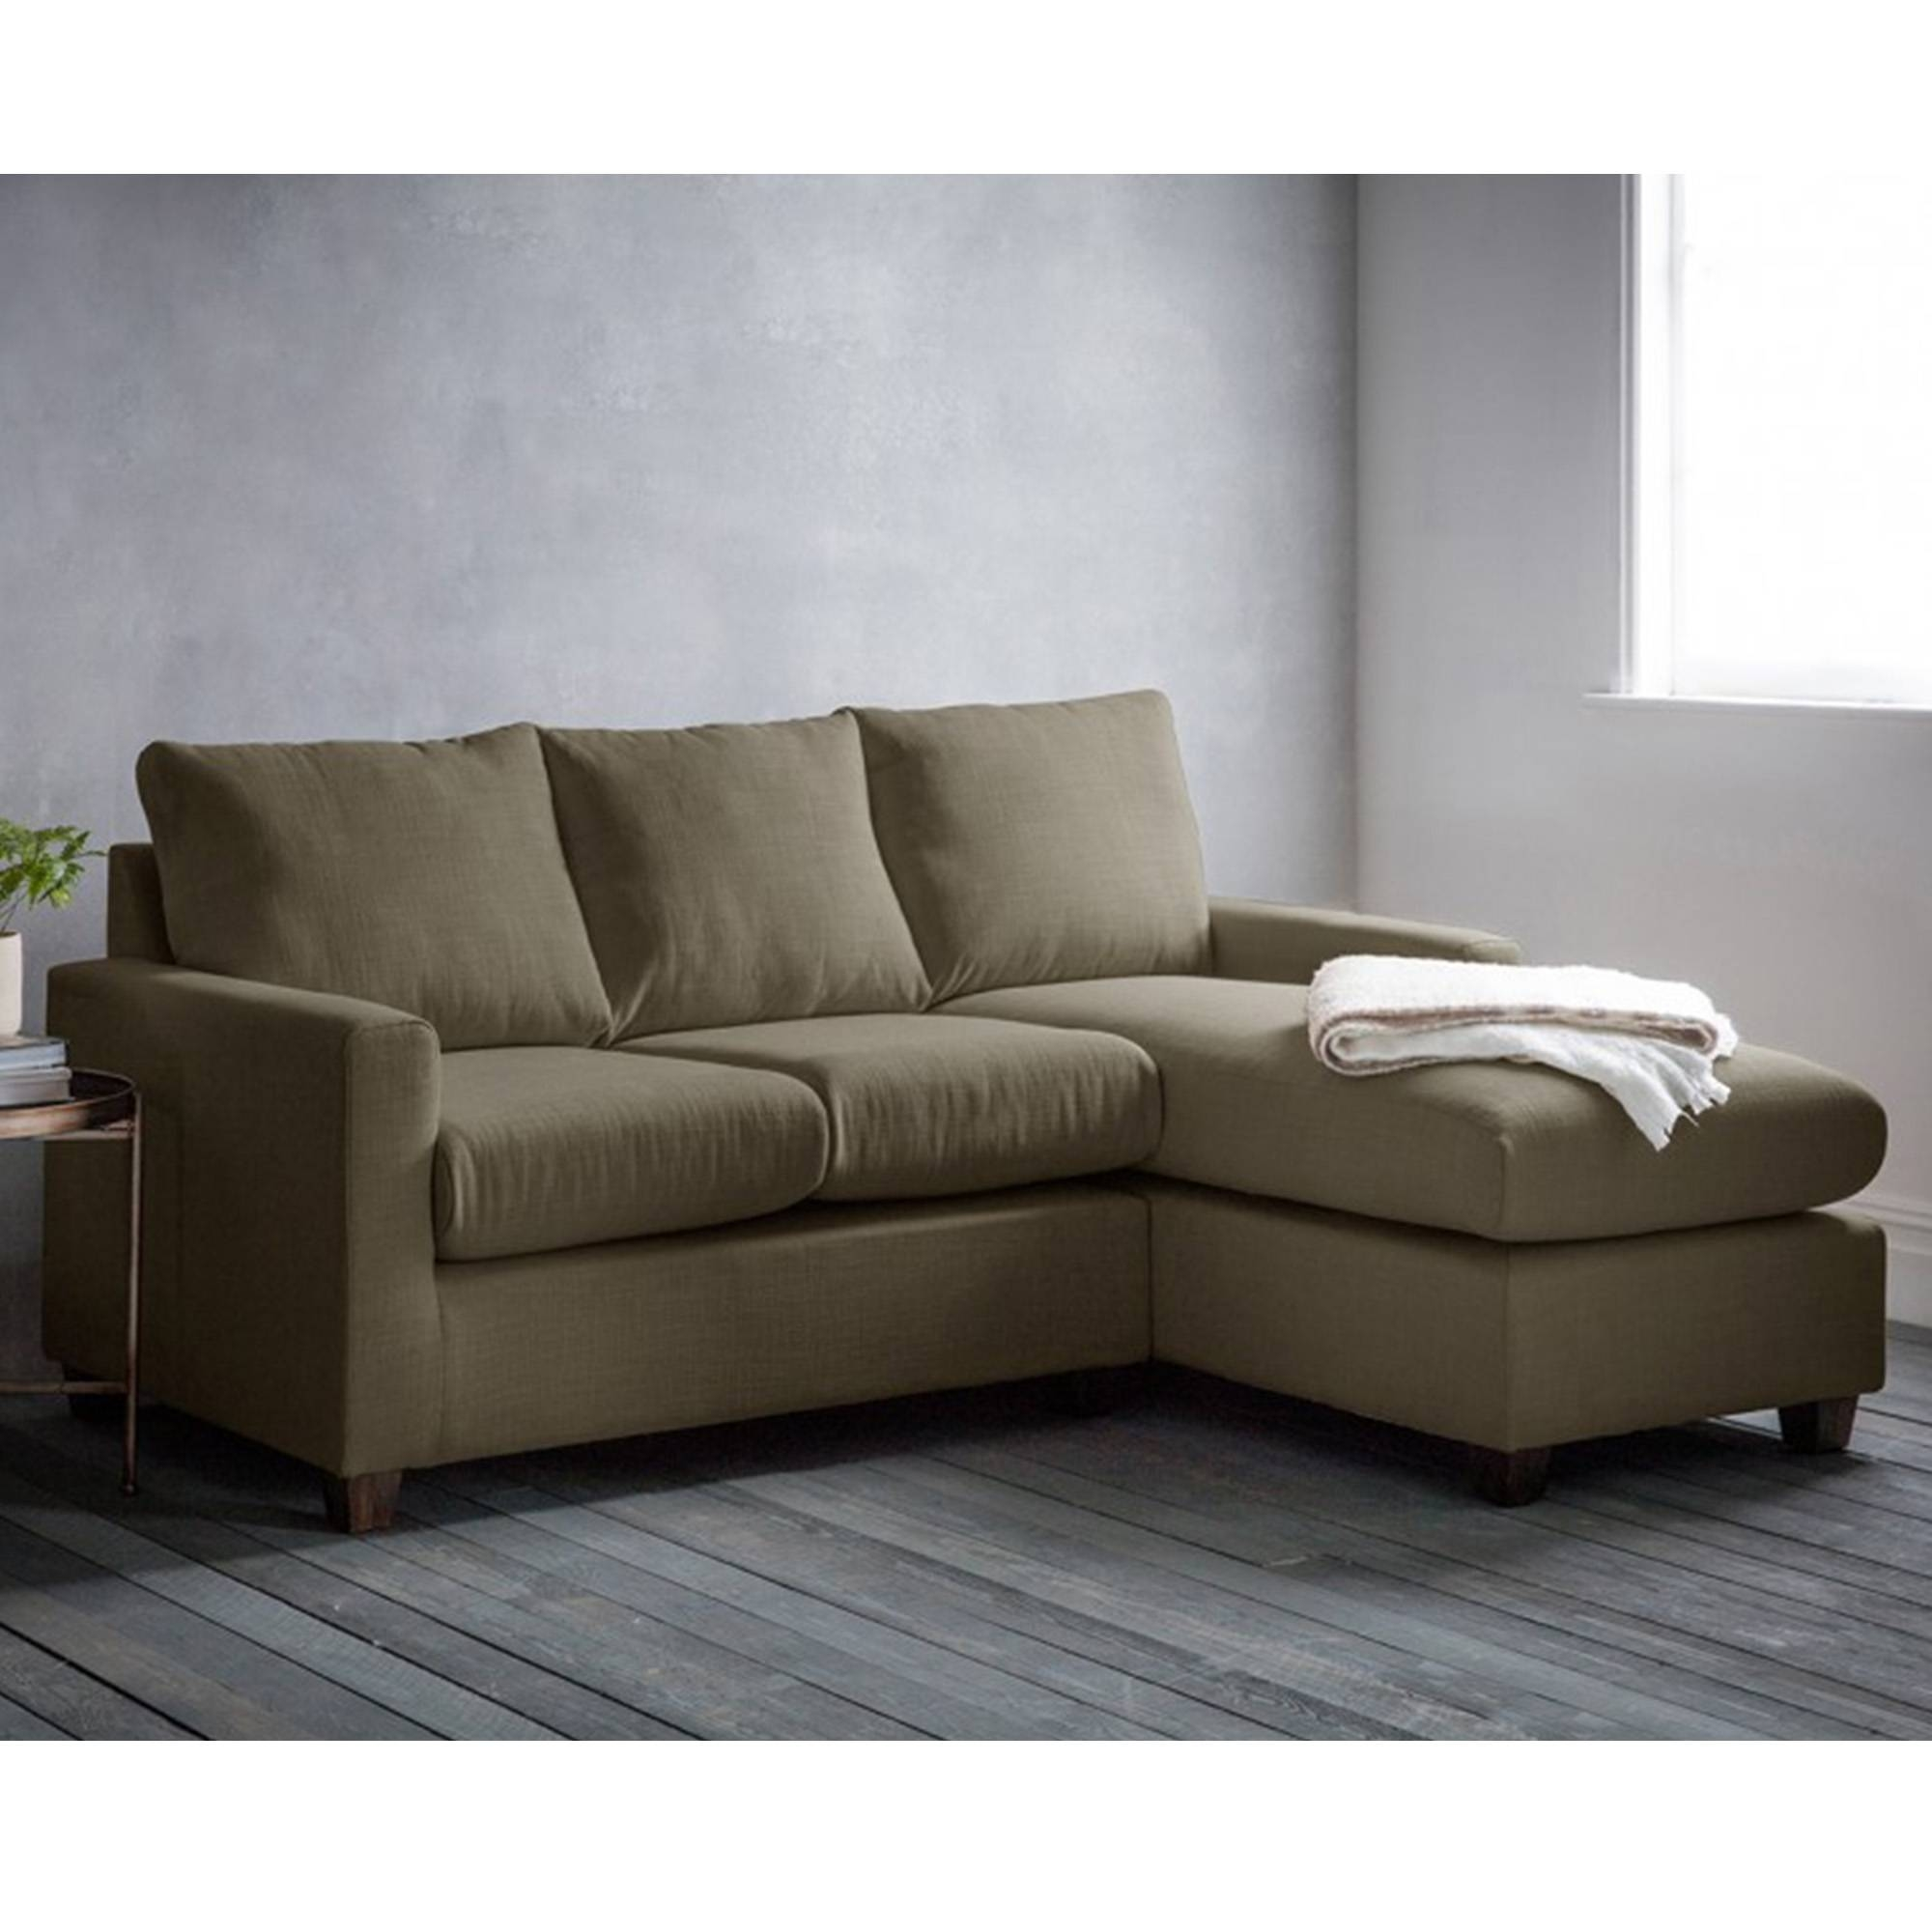 Field Army Stratford Lh Chaise Sofa | Seating Online From Throughout Stratford Sofas (View 3 of 30)